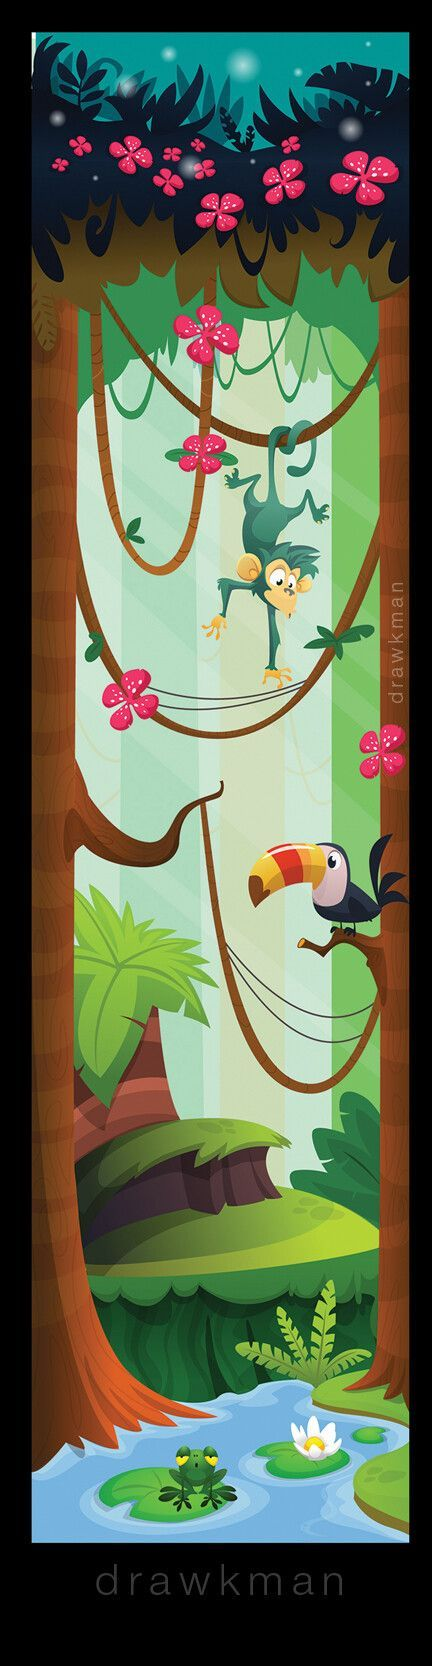 Cartoon jungle game art background design. Vector illustration by drawkman #dra …   – Game Art